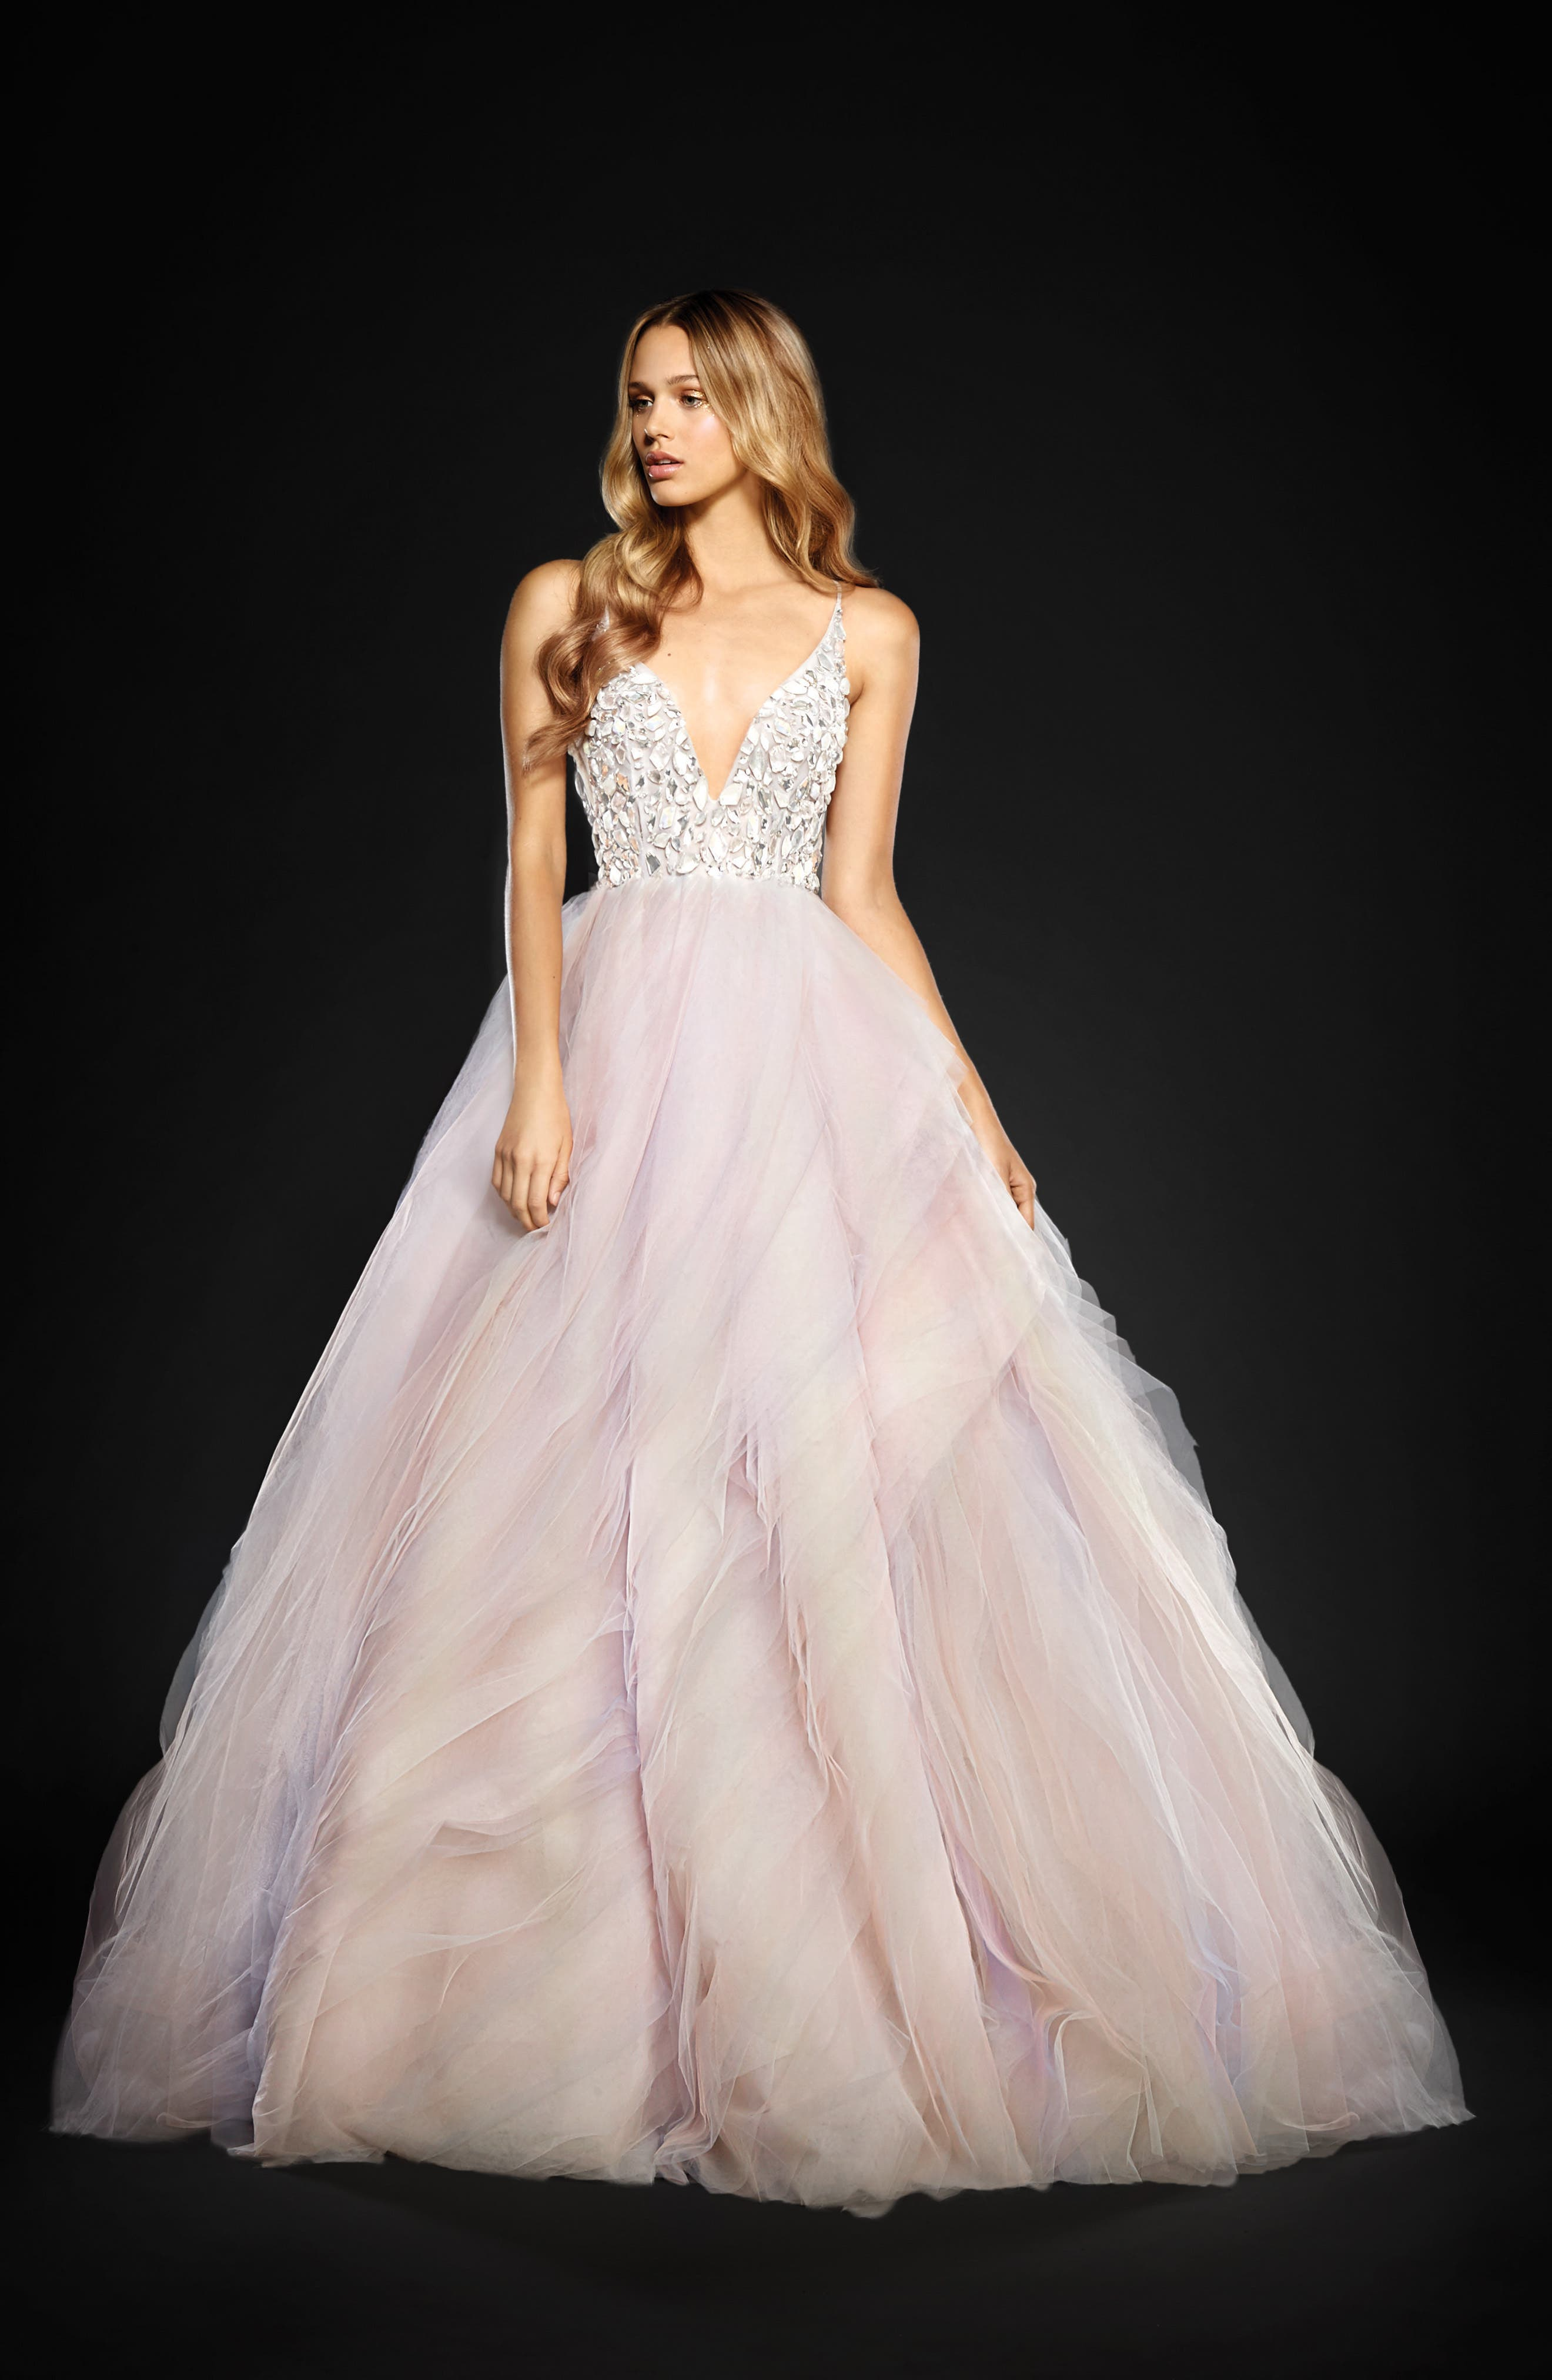 Jem Rock Candy Embellished Tulle Ballgown,                         Main,                         color, 900